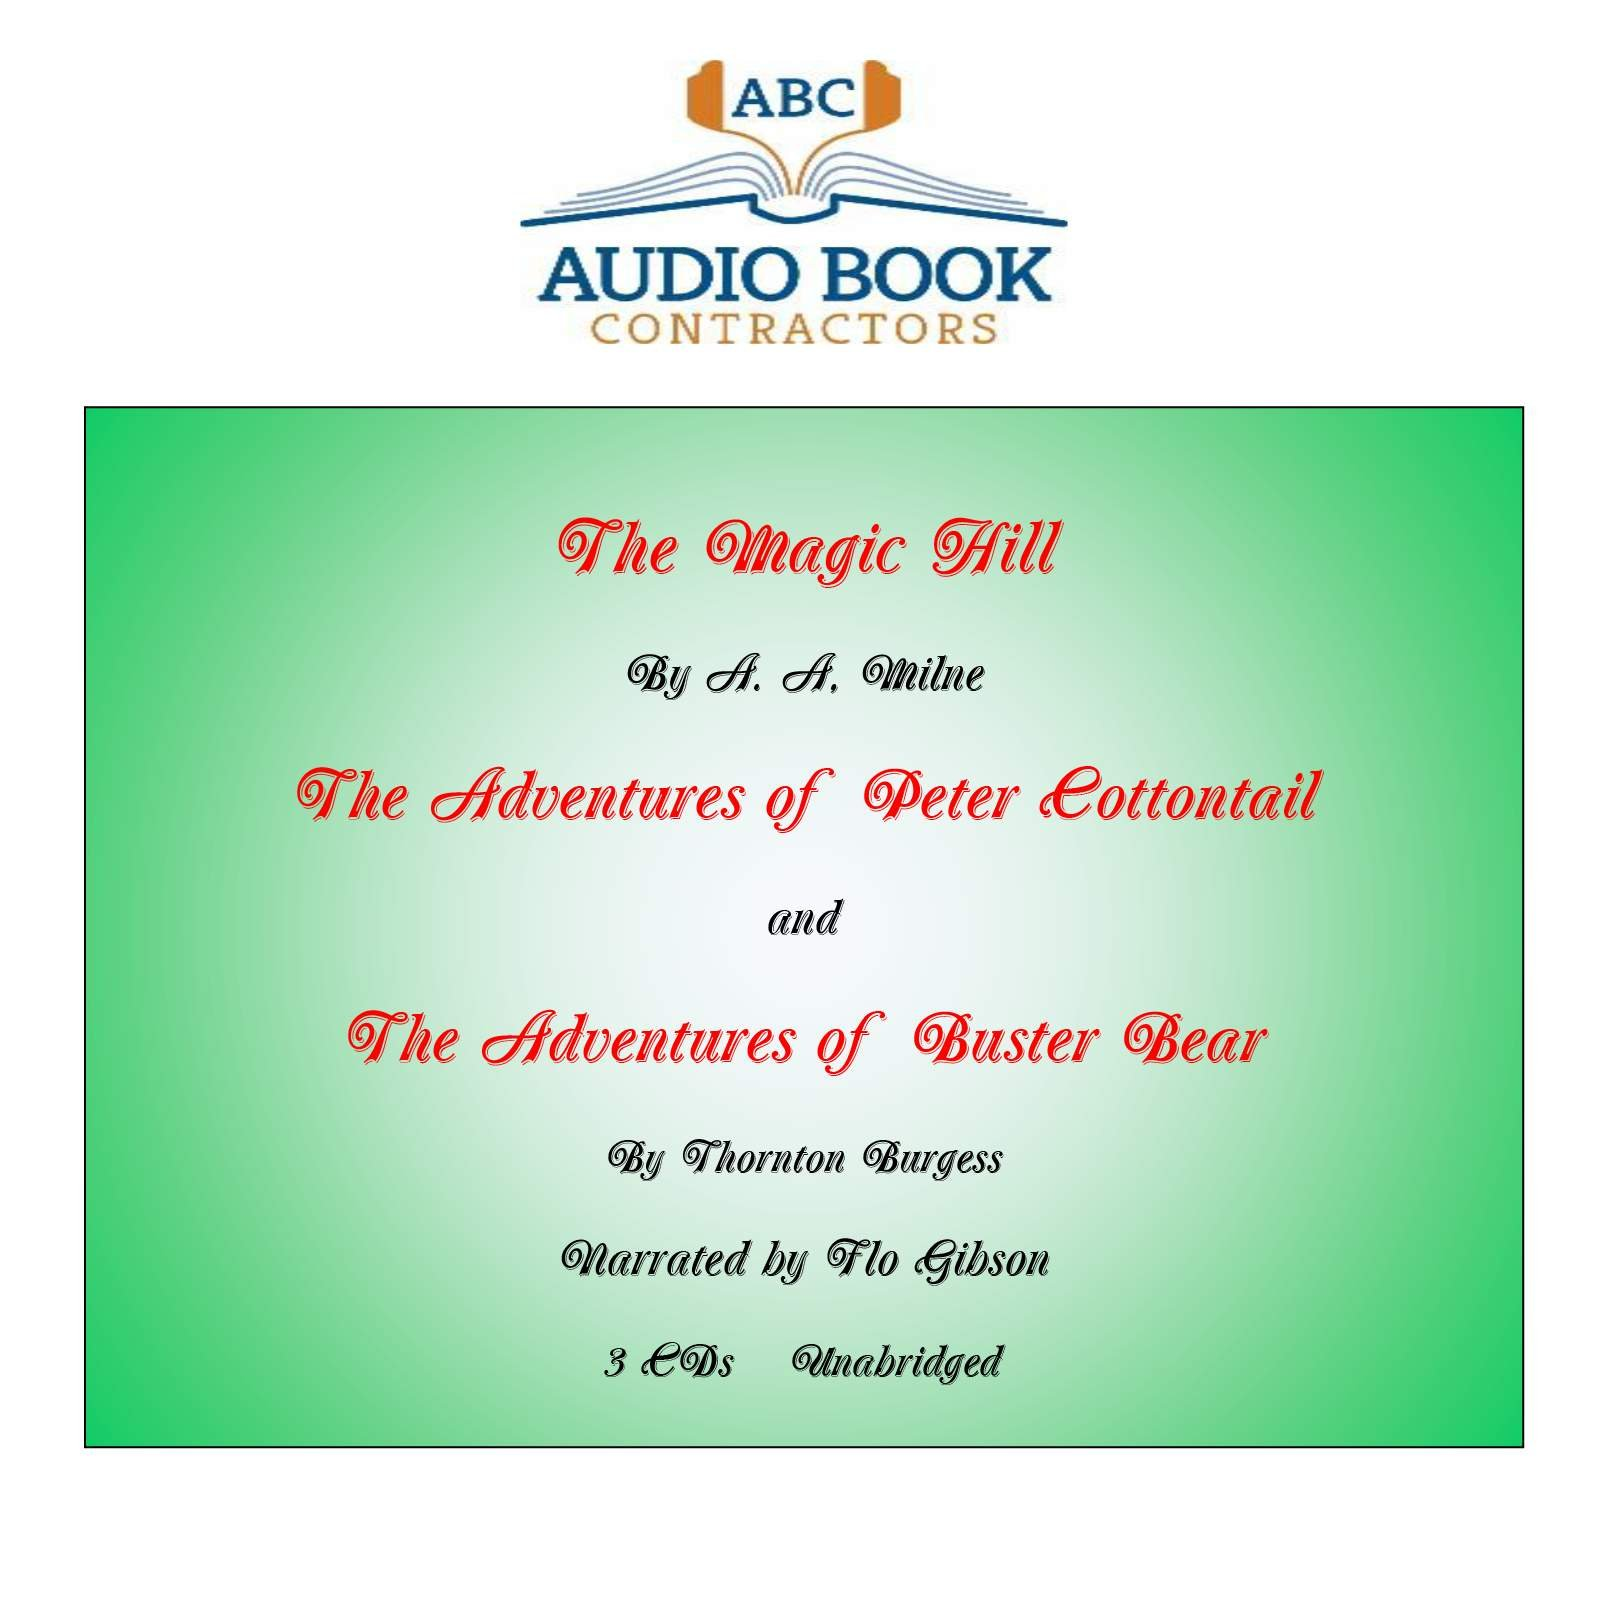 'The Magic Hill', 'The Adventures of Peter Cottontail' and 'The Adventures of Buster Bear' (Classic Books on CD Collection) [UNABRIDGED]